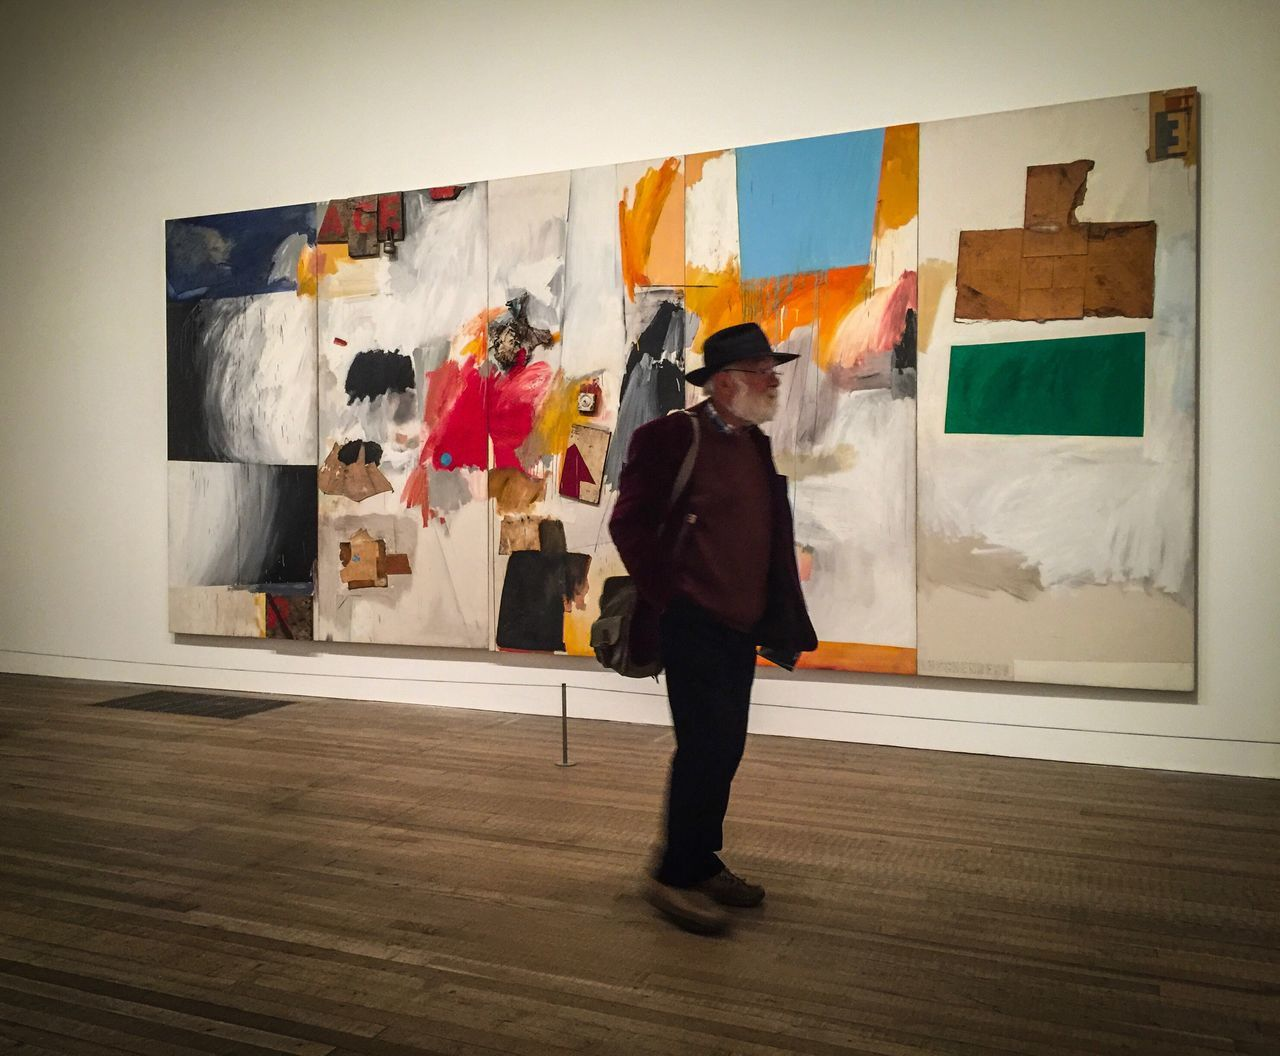 Full Length Painted Image Real People Hanging One Person Indoors  Modern Art Exhibition Architecture One Woman Only Day Adults Only Adult People Young Adult Man Interior Rauschenberg Culture Mixedmedia London London Lifestyle Londonlife TateModern Art